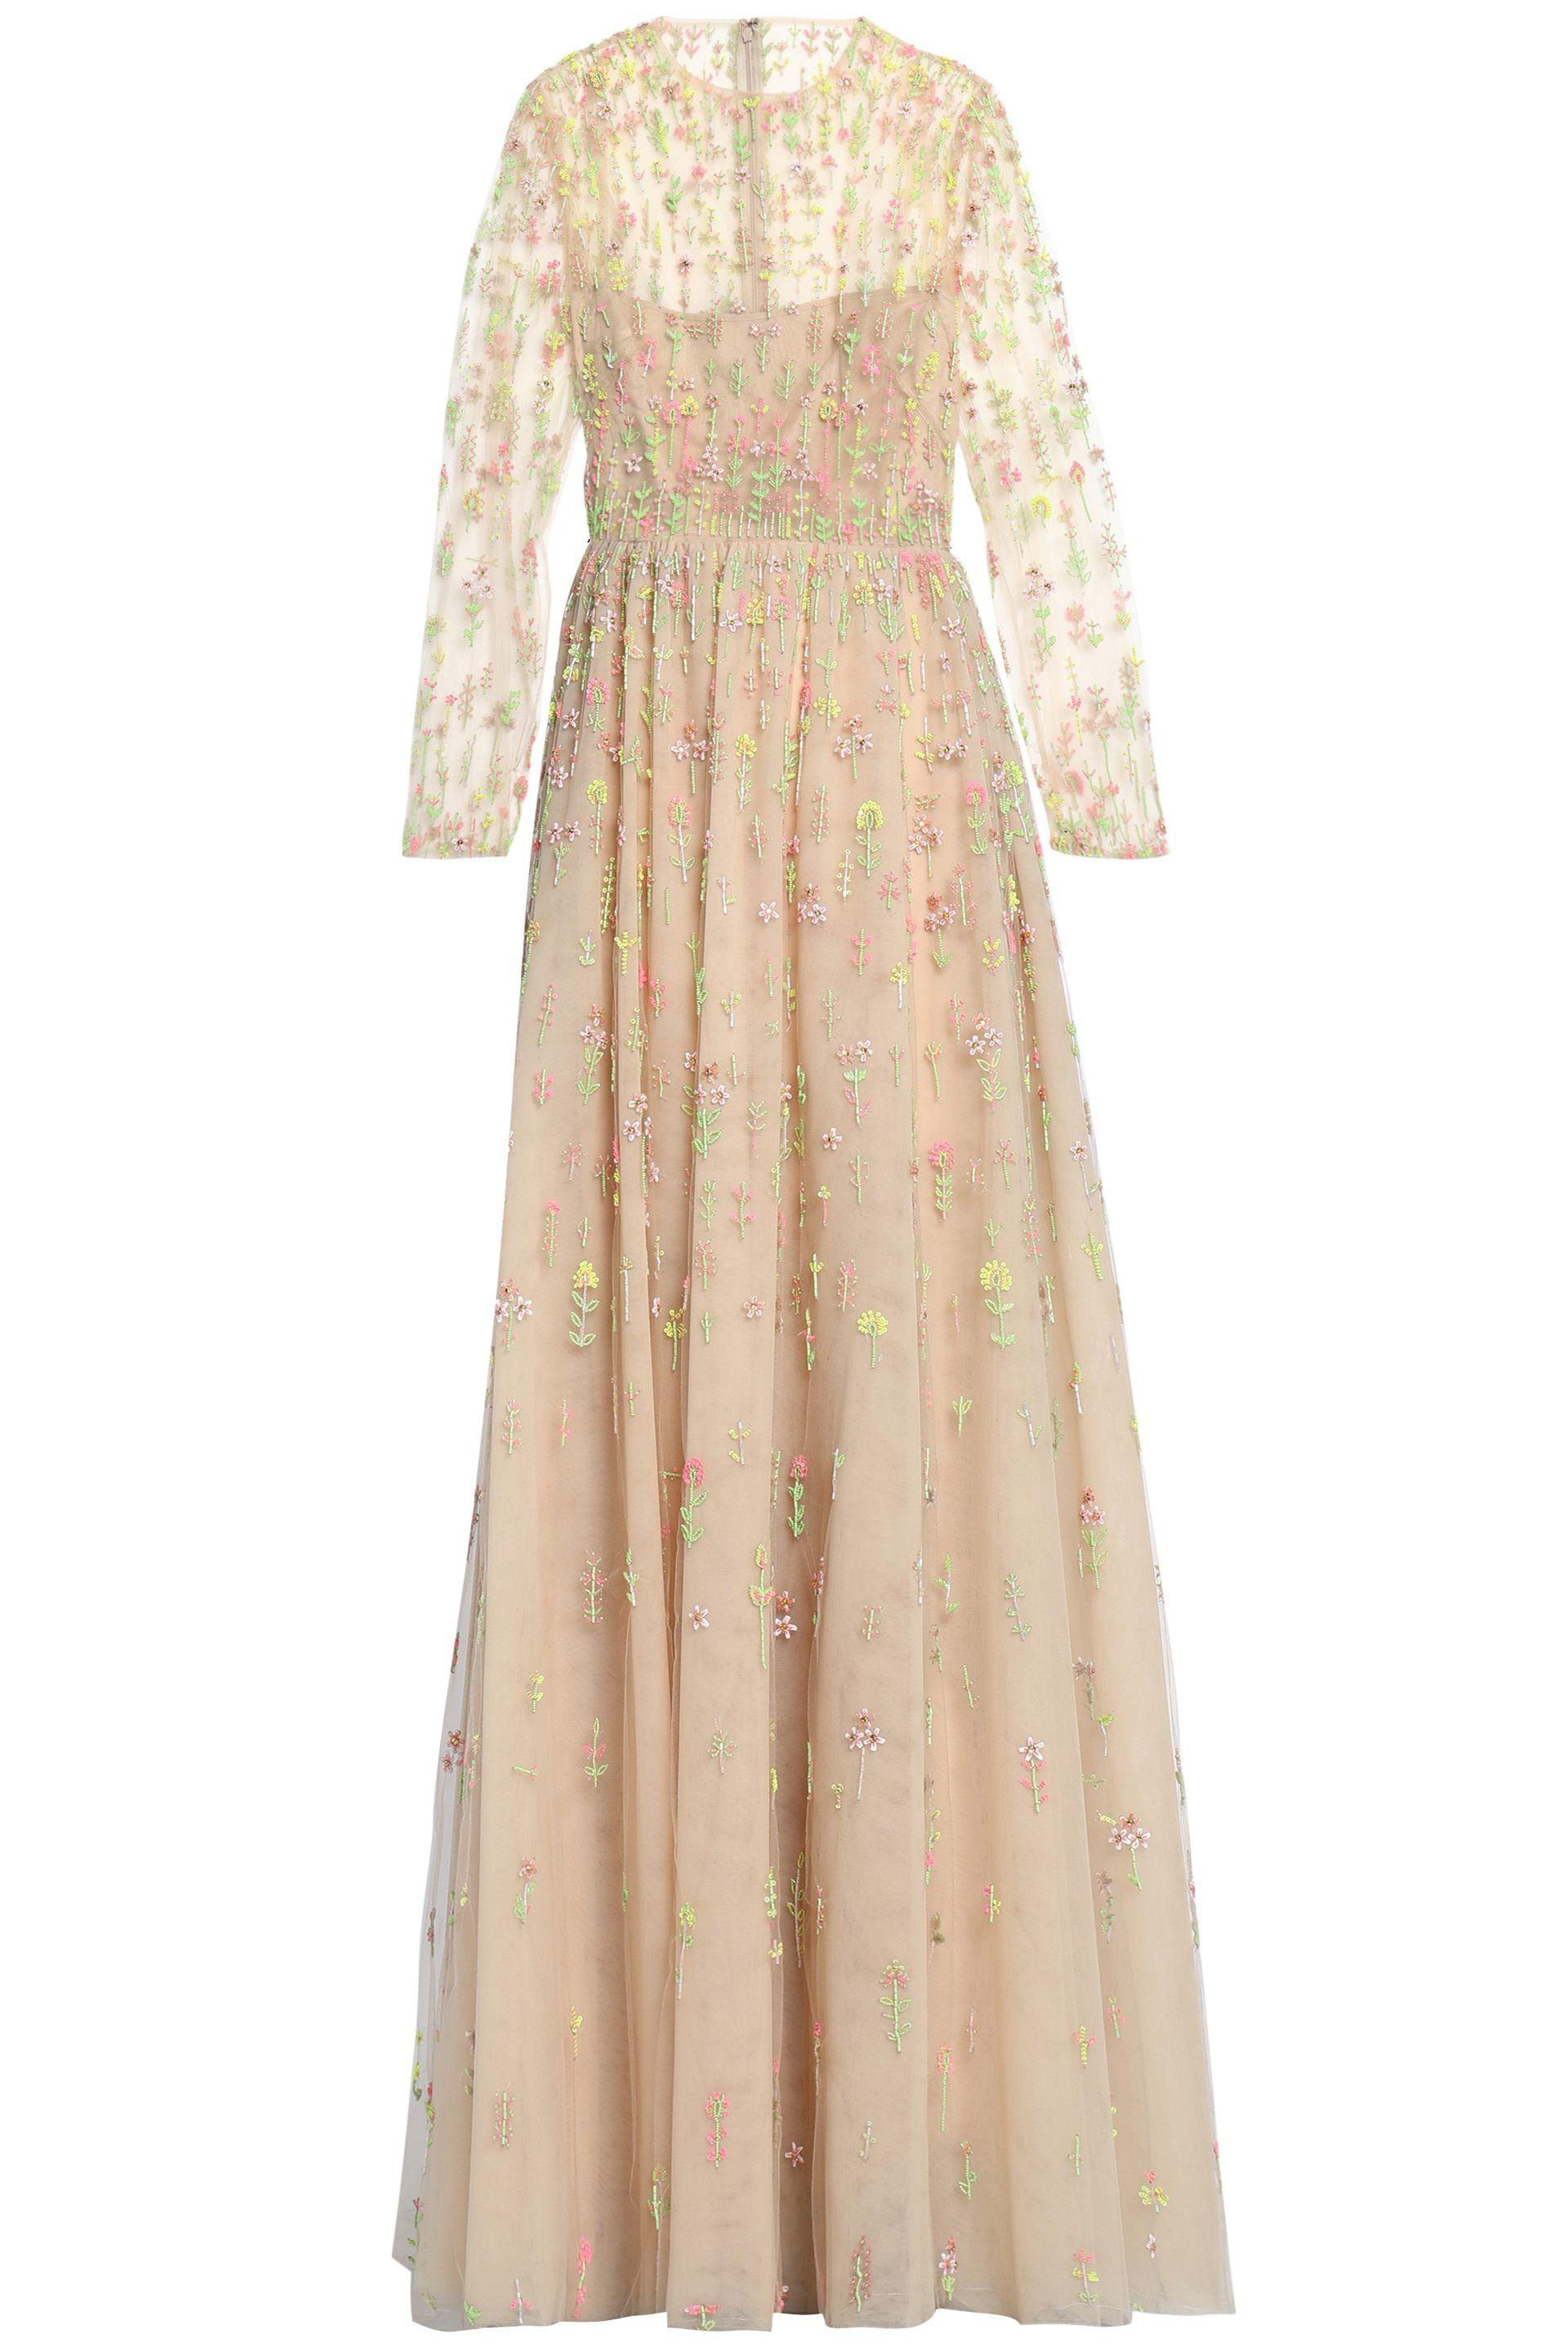 Lyst - Valentino Embellished Tulle Gown in Natural